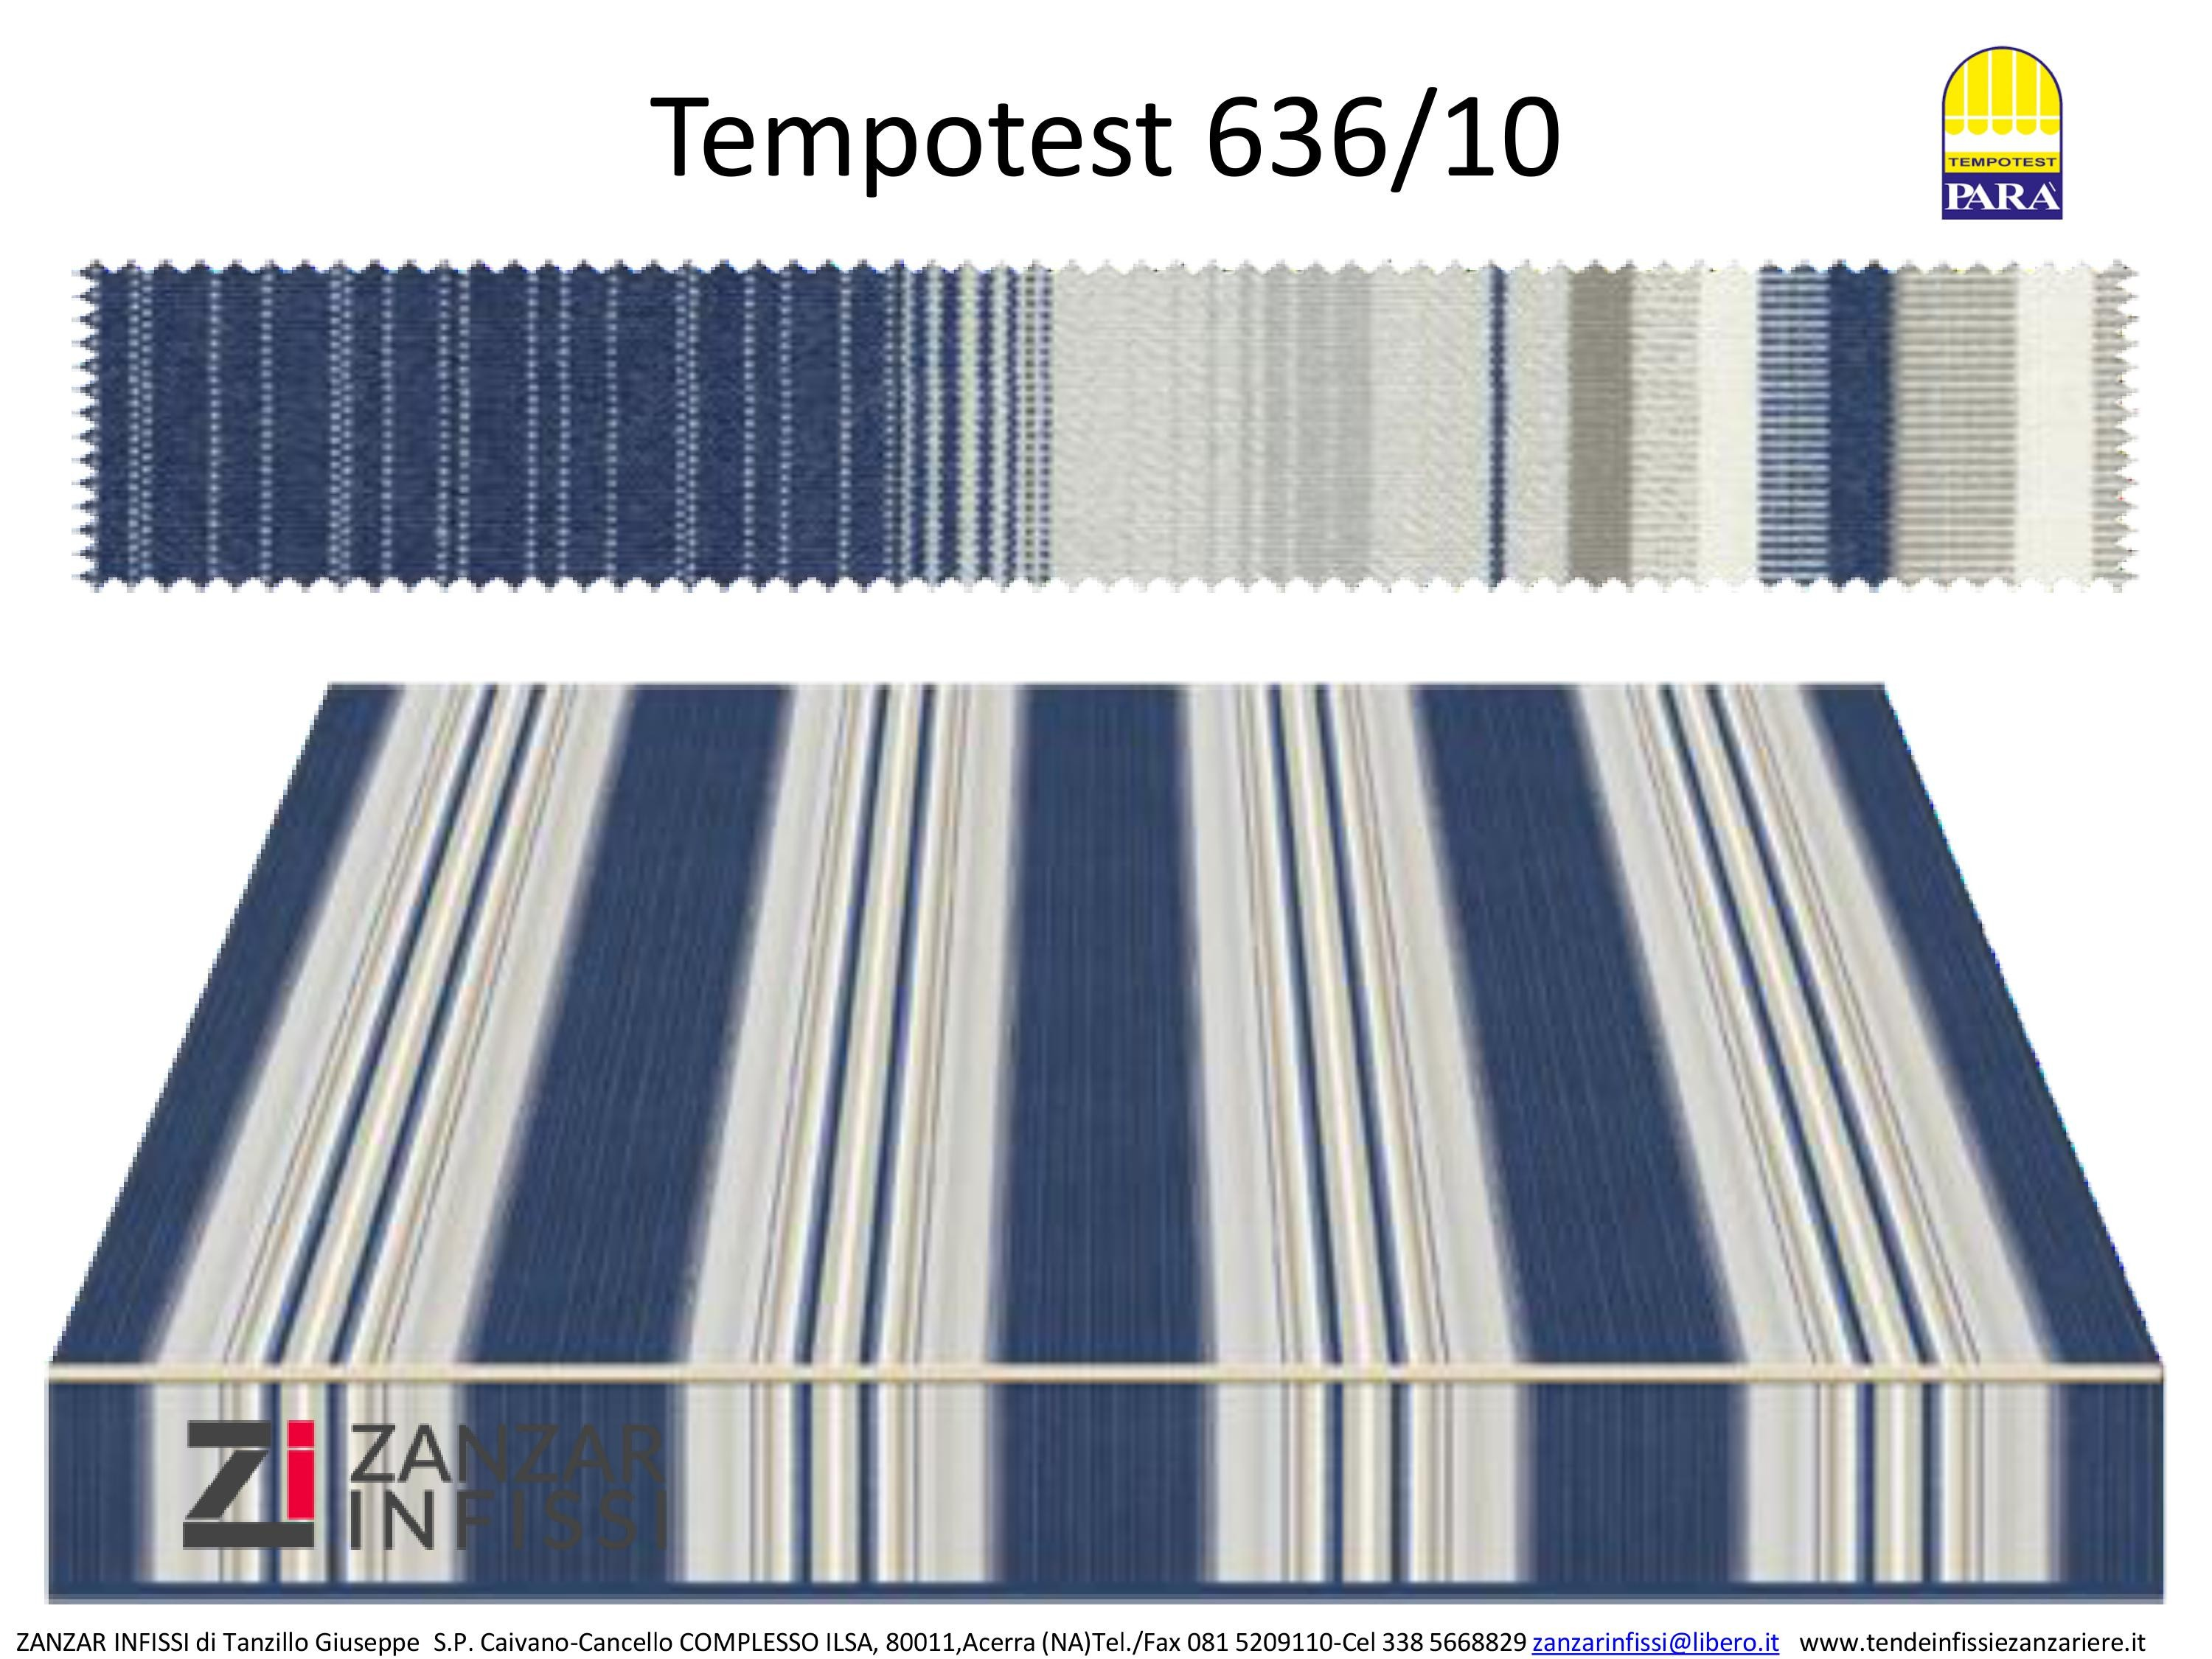 Tempotest 636/10